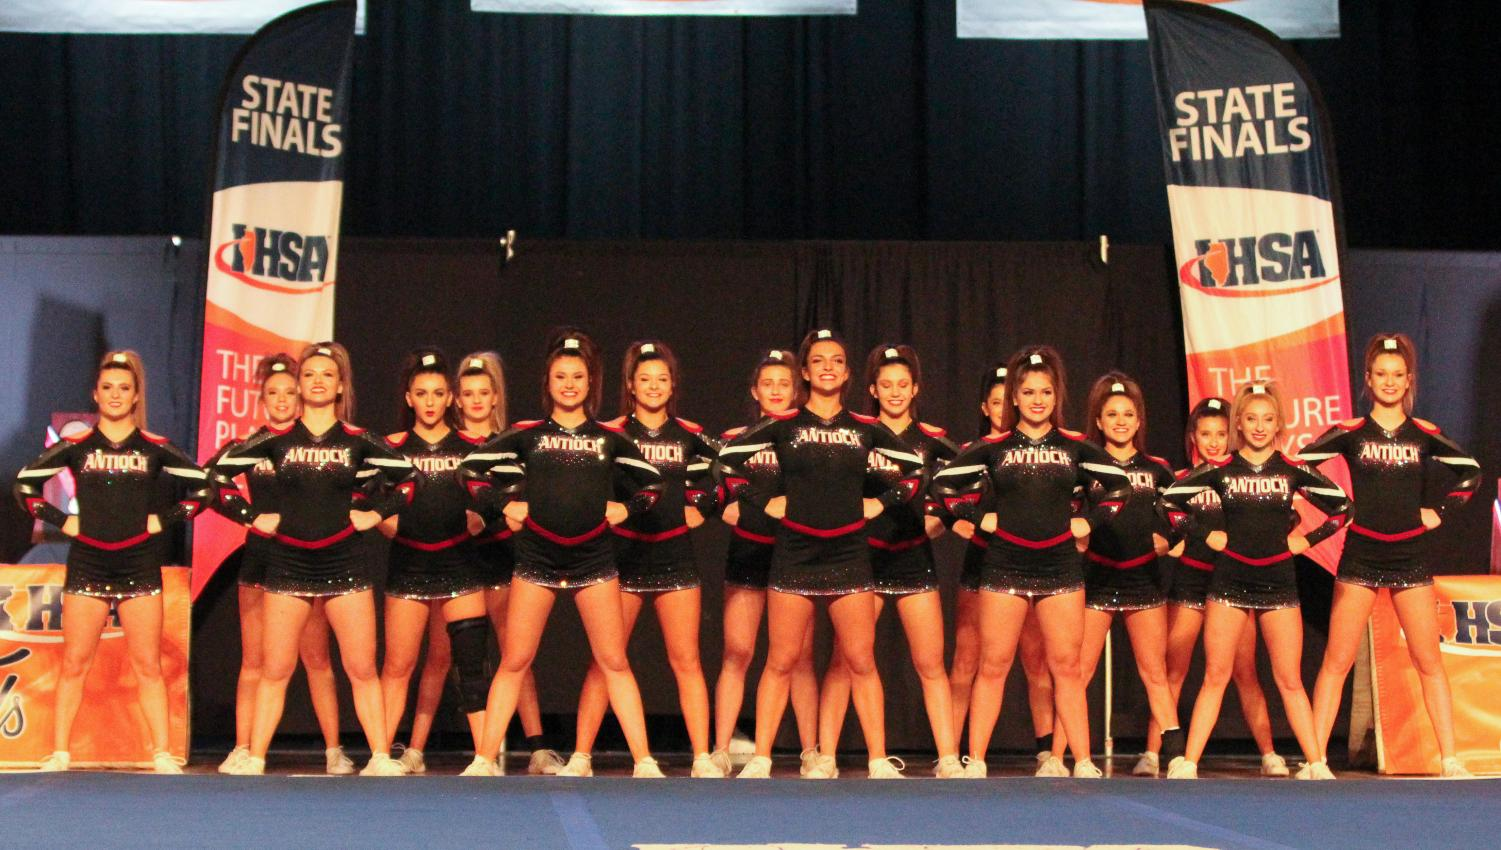 The varsity cheerleading squad stands tall, prepared for their upcoming performance on the first day of the state finals. The team advanced to day two.